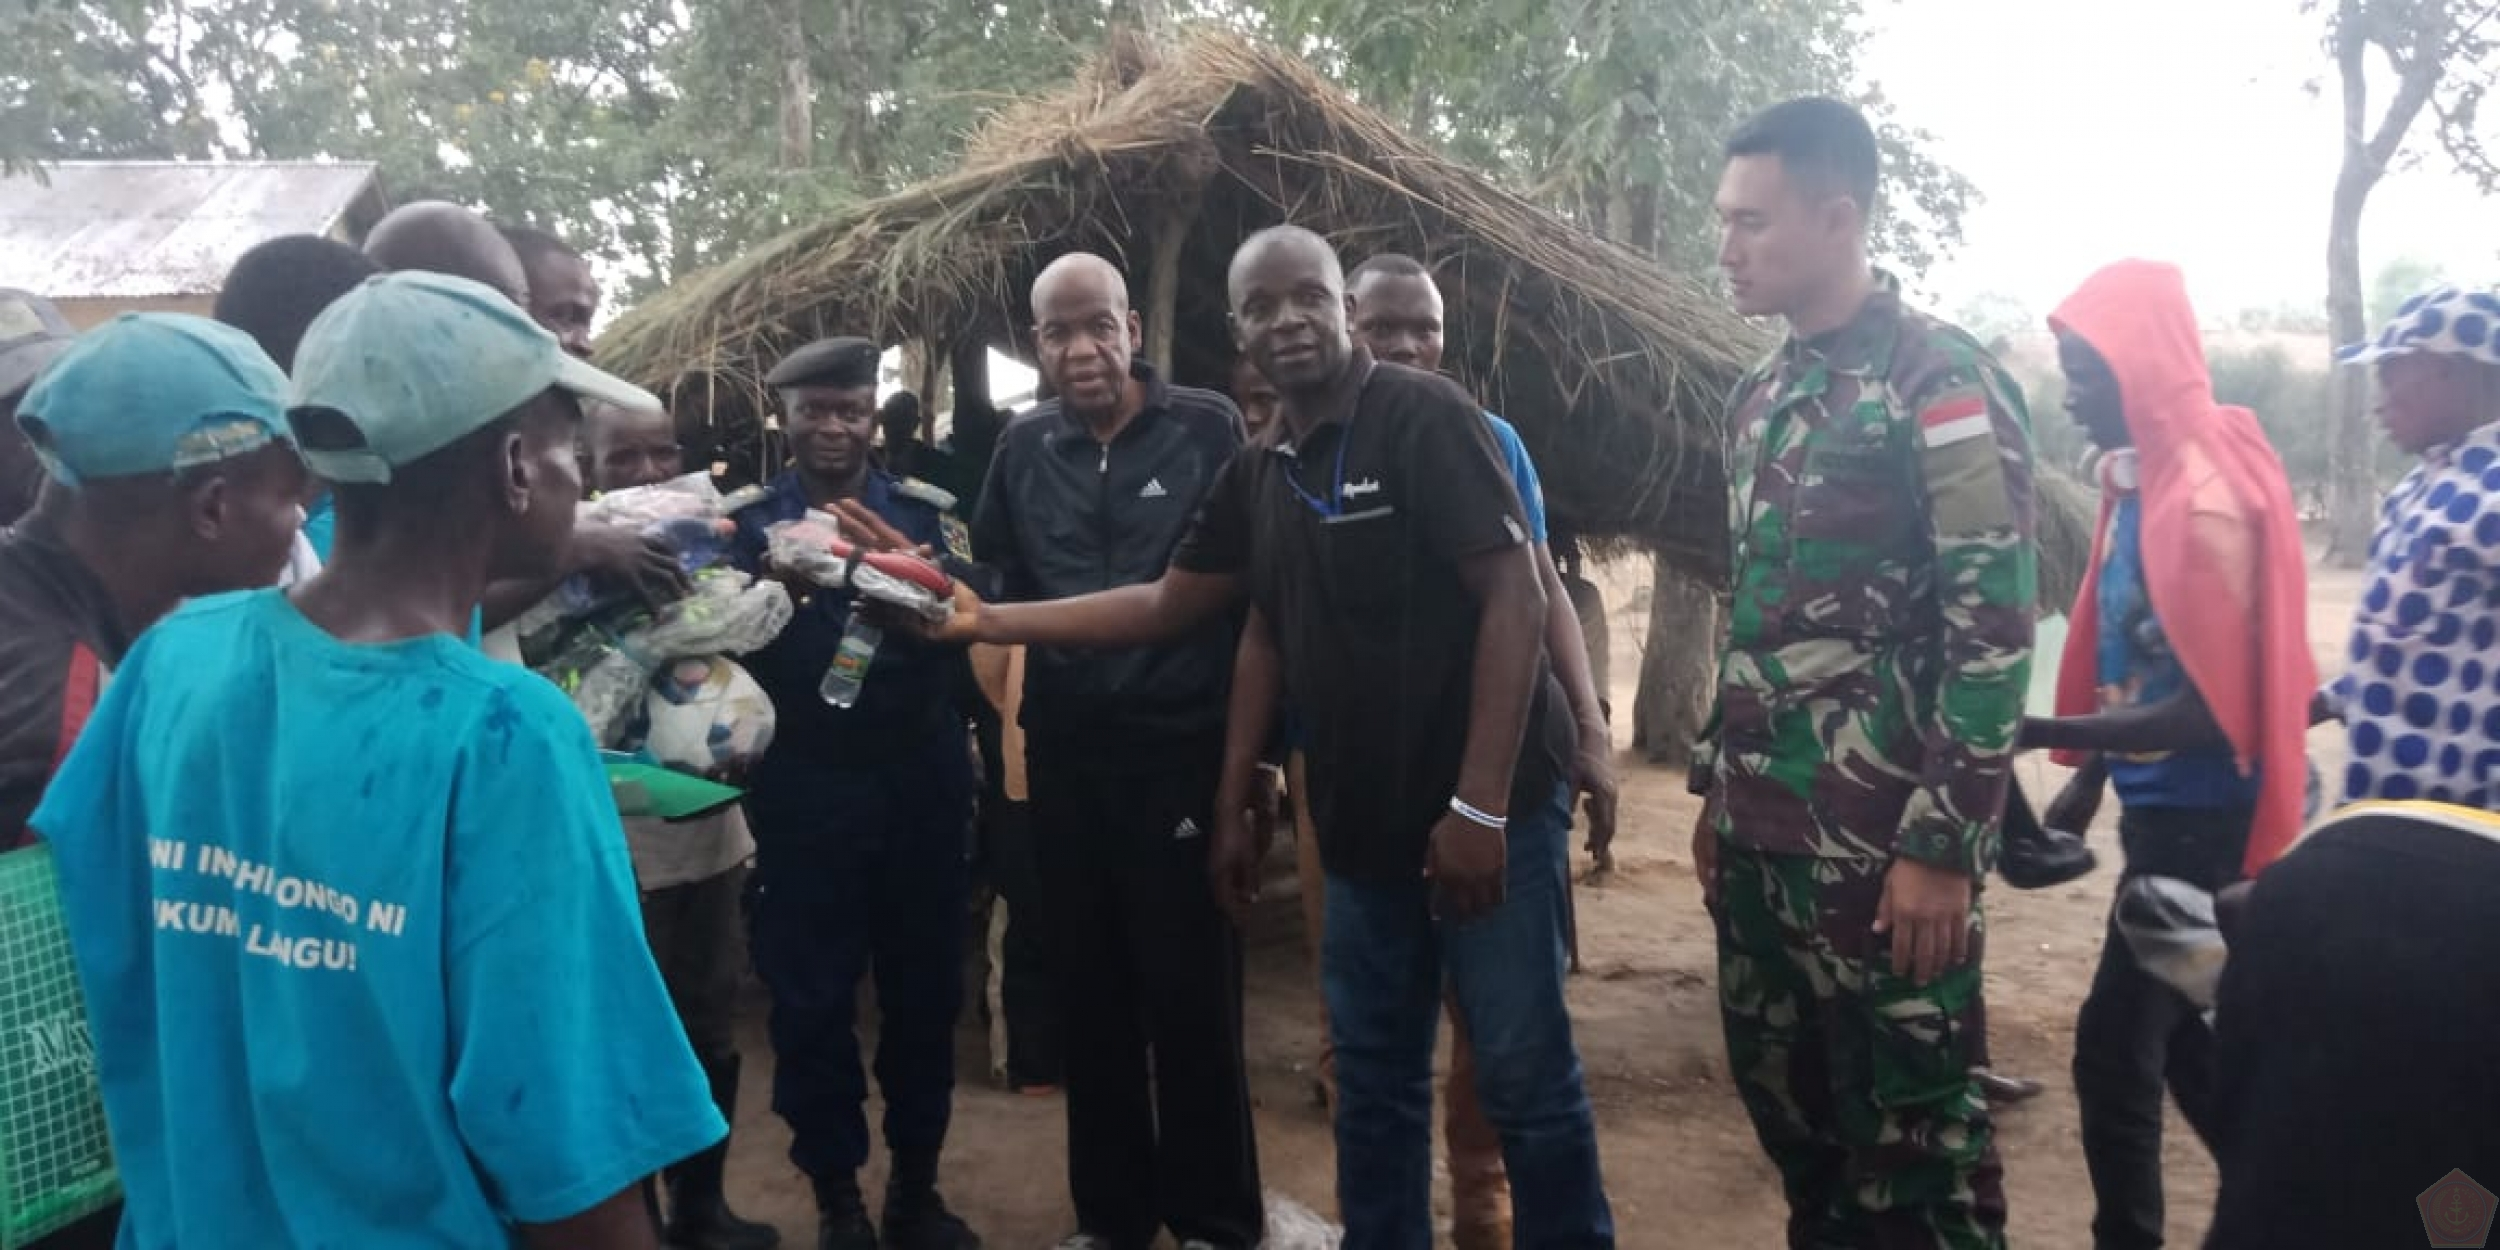 Satgas  TNI  Konga XXXIX-A RDB Monusco  Gelar Joint Activity Mission Baraza Di Republik Demokratik Kongo